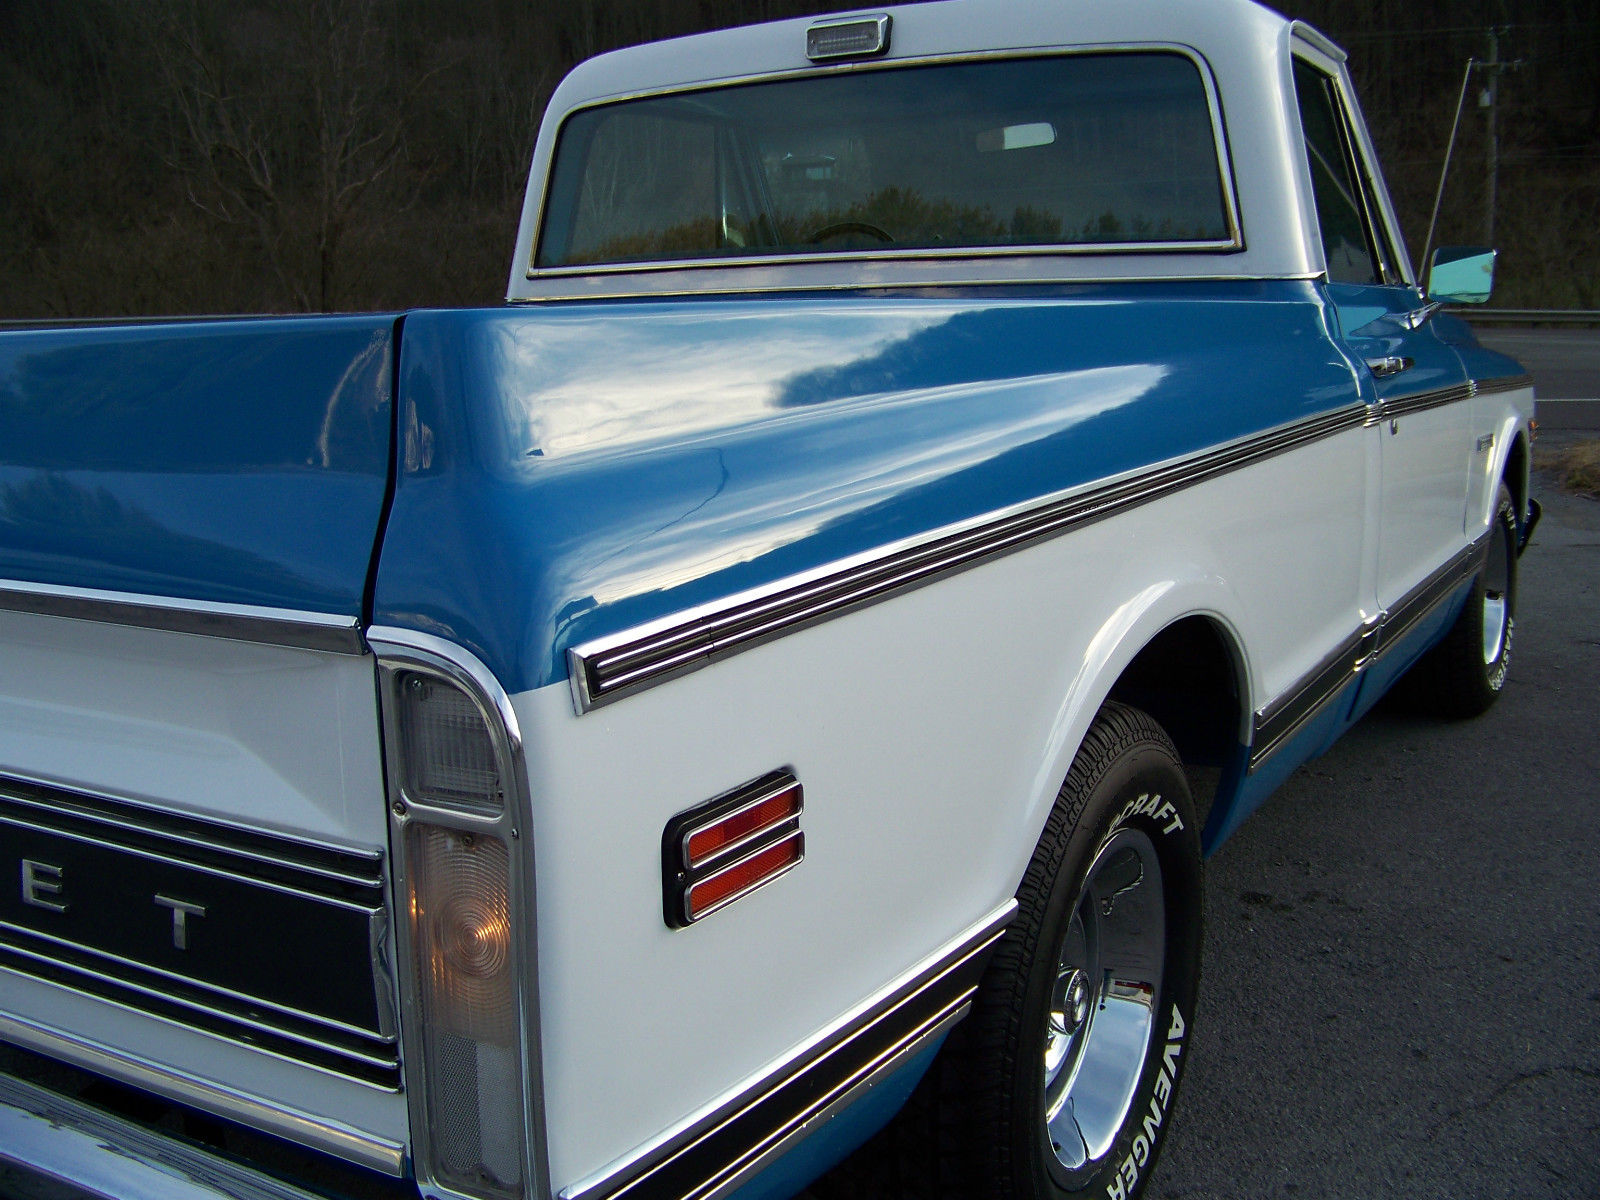 72 CHEVROLET C10 SHORT BED 350 AUTOMATIC VERY NICE ...